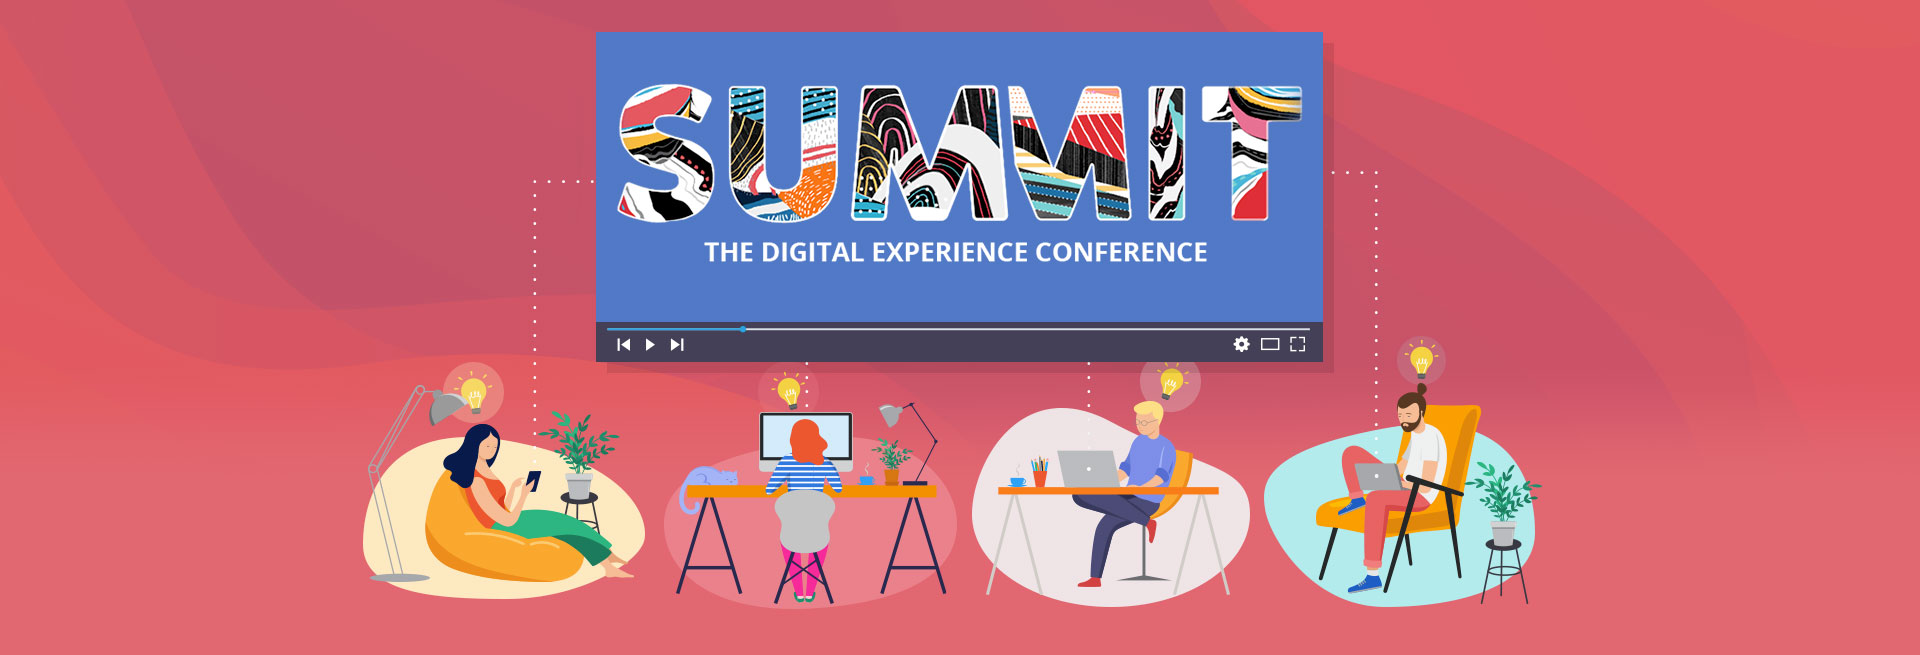 blastanalytics: Missed out on #AdobeSummit Live? Read our top sessions and takeaways in our latest post >> https://t.co/iJMtleF2Ns #data #analytics #measure